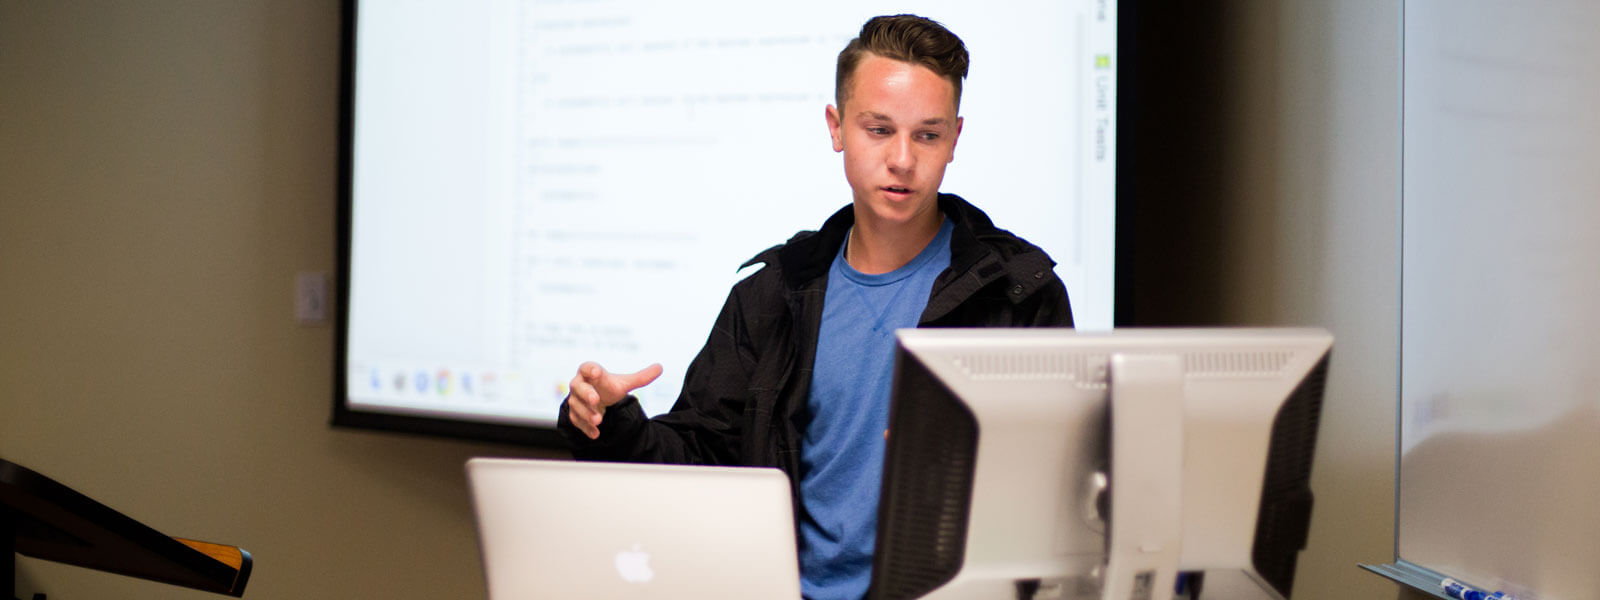 student looks at computer screen while giving class presentation